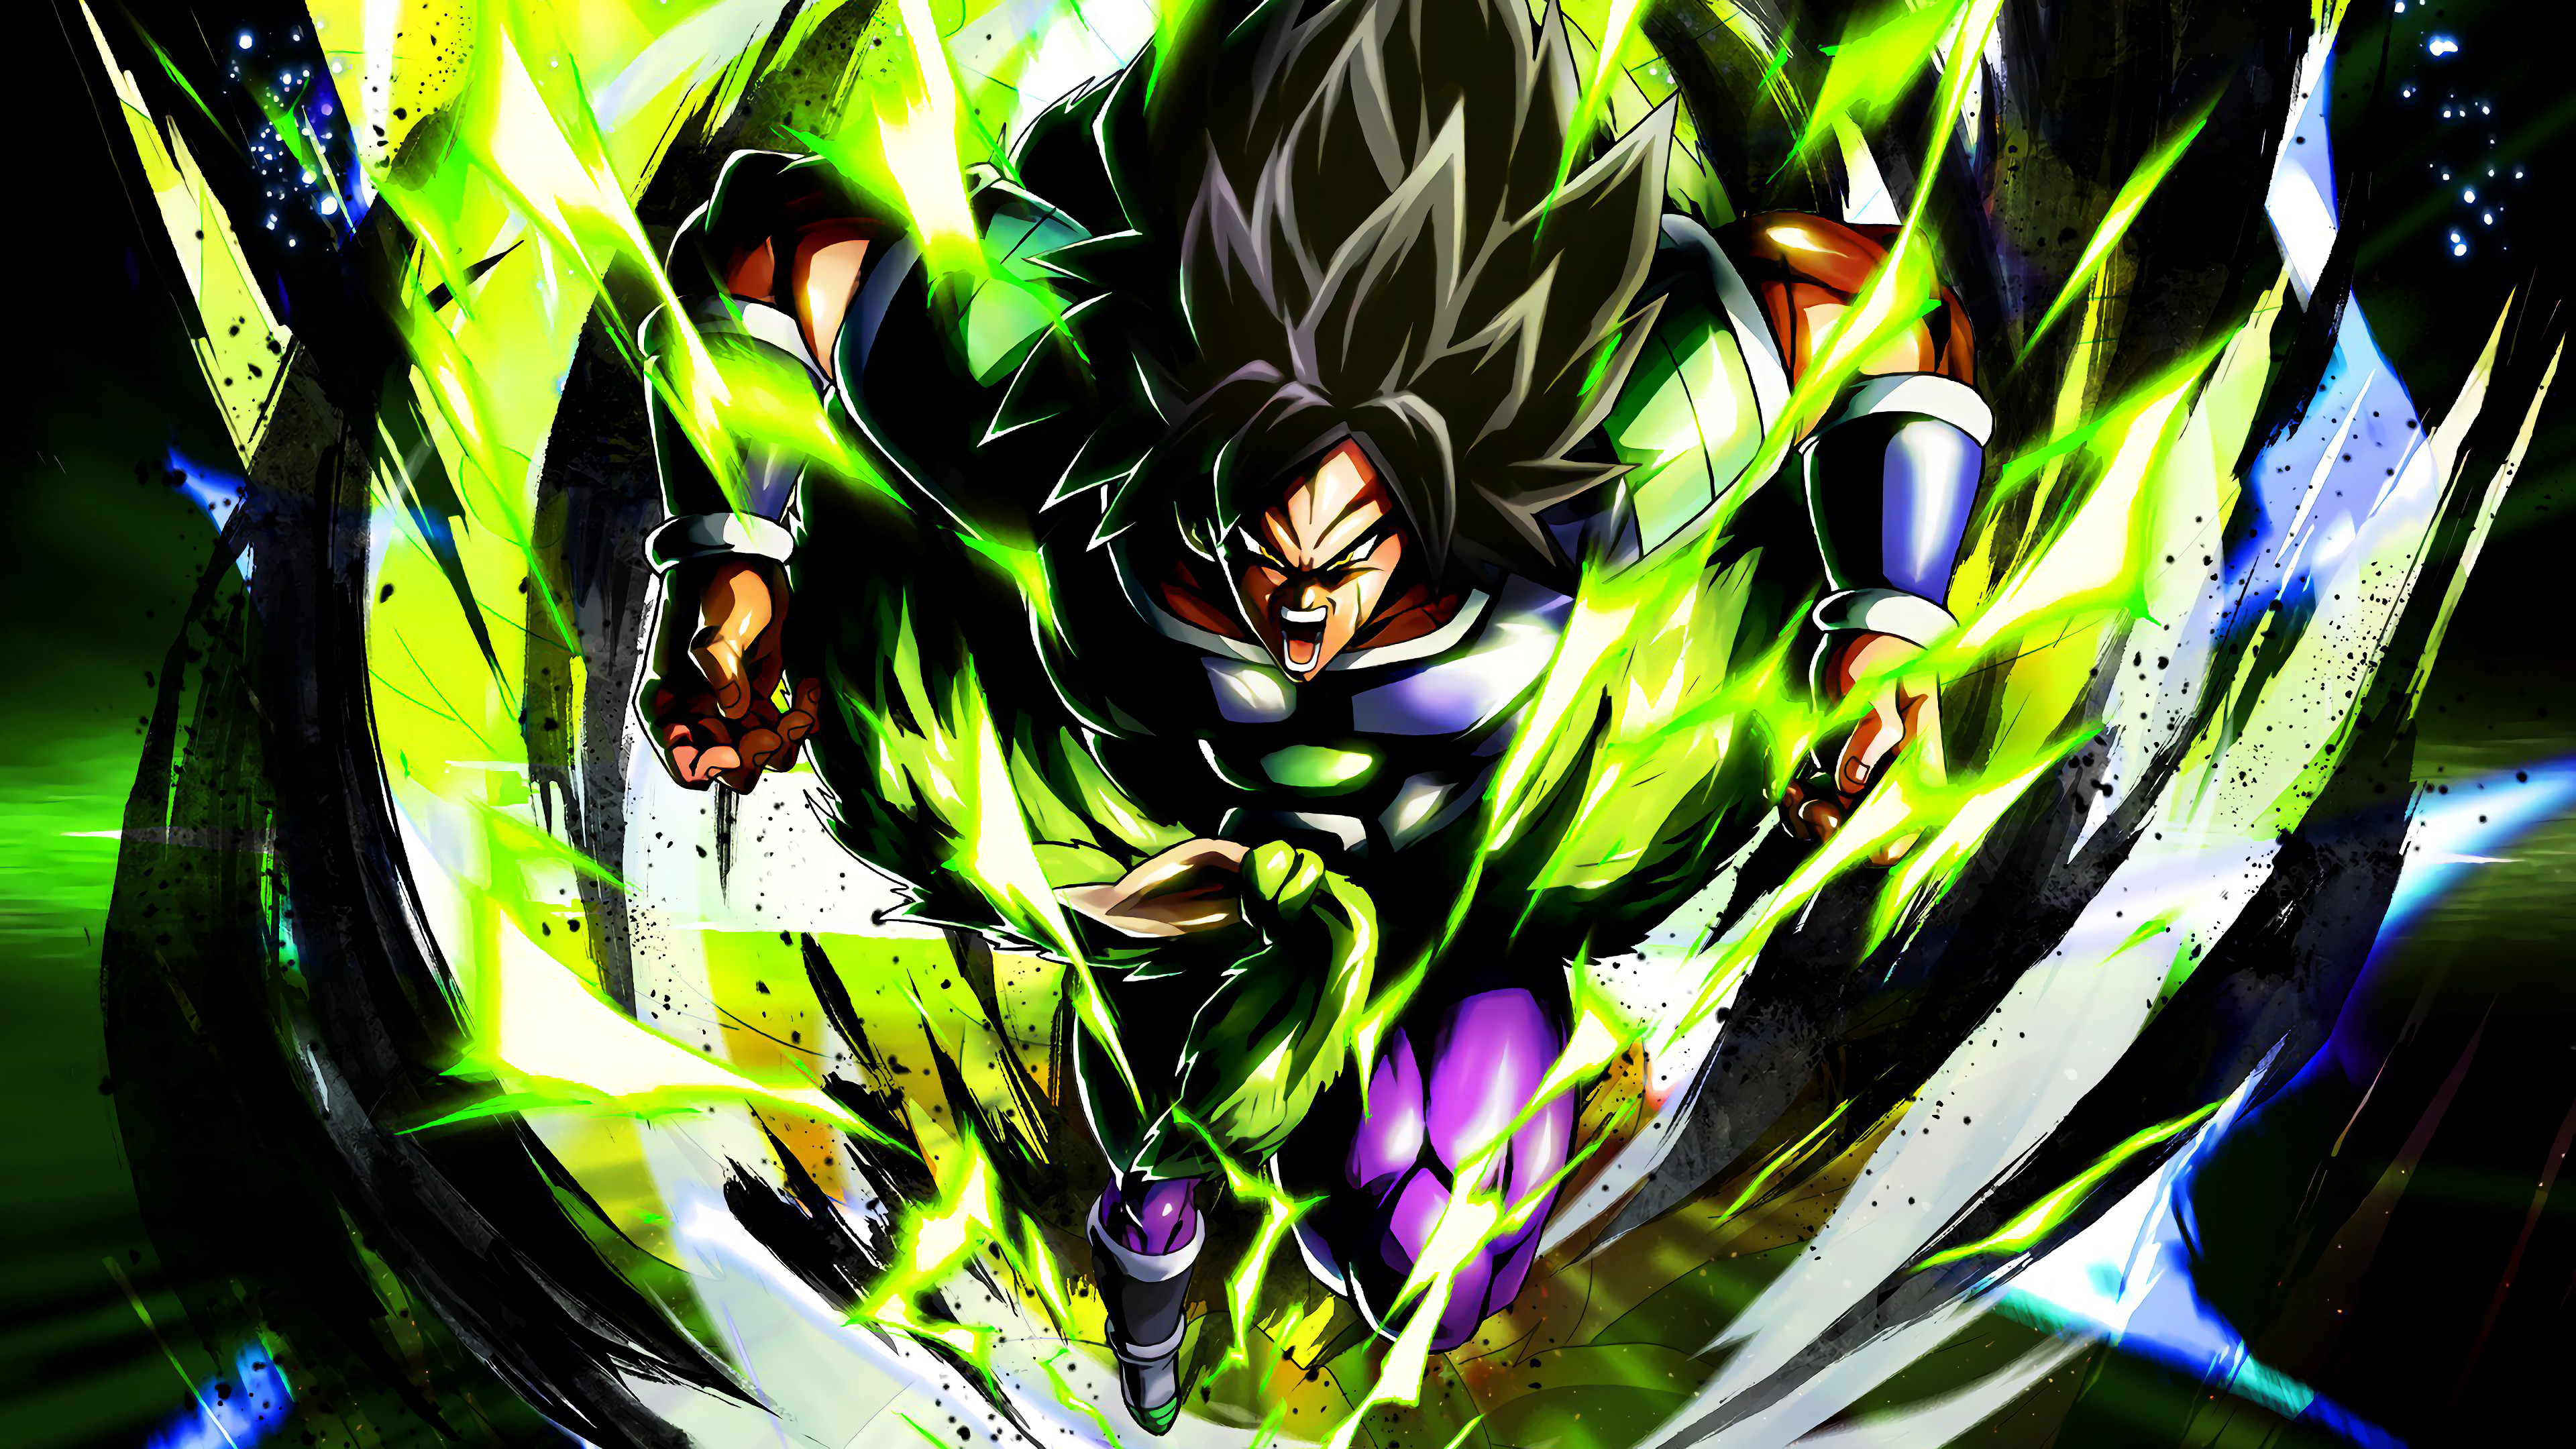 Broly Power 4k Ultra Hd Wallpaper Background Image 3840x2160